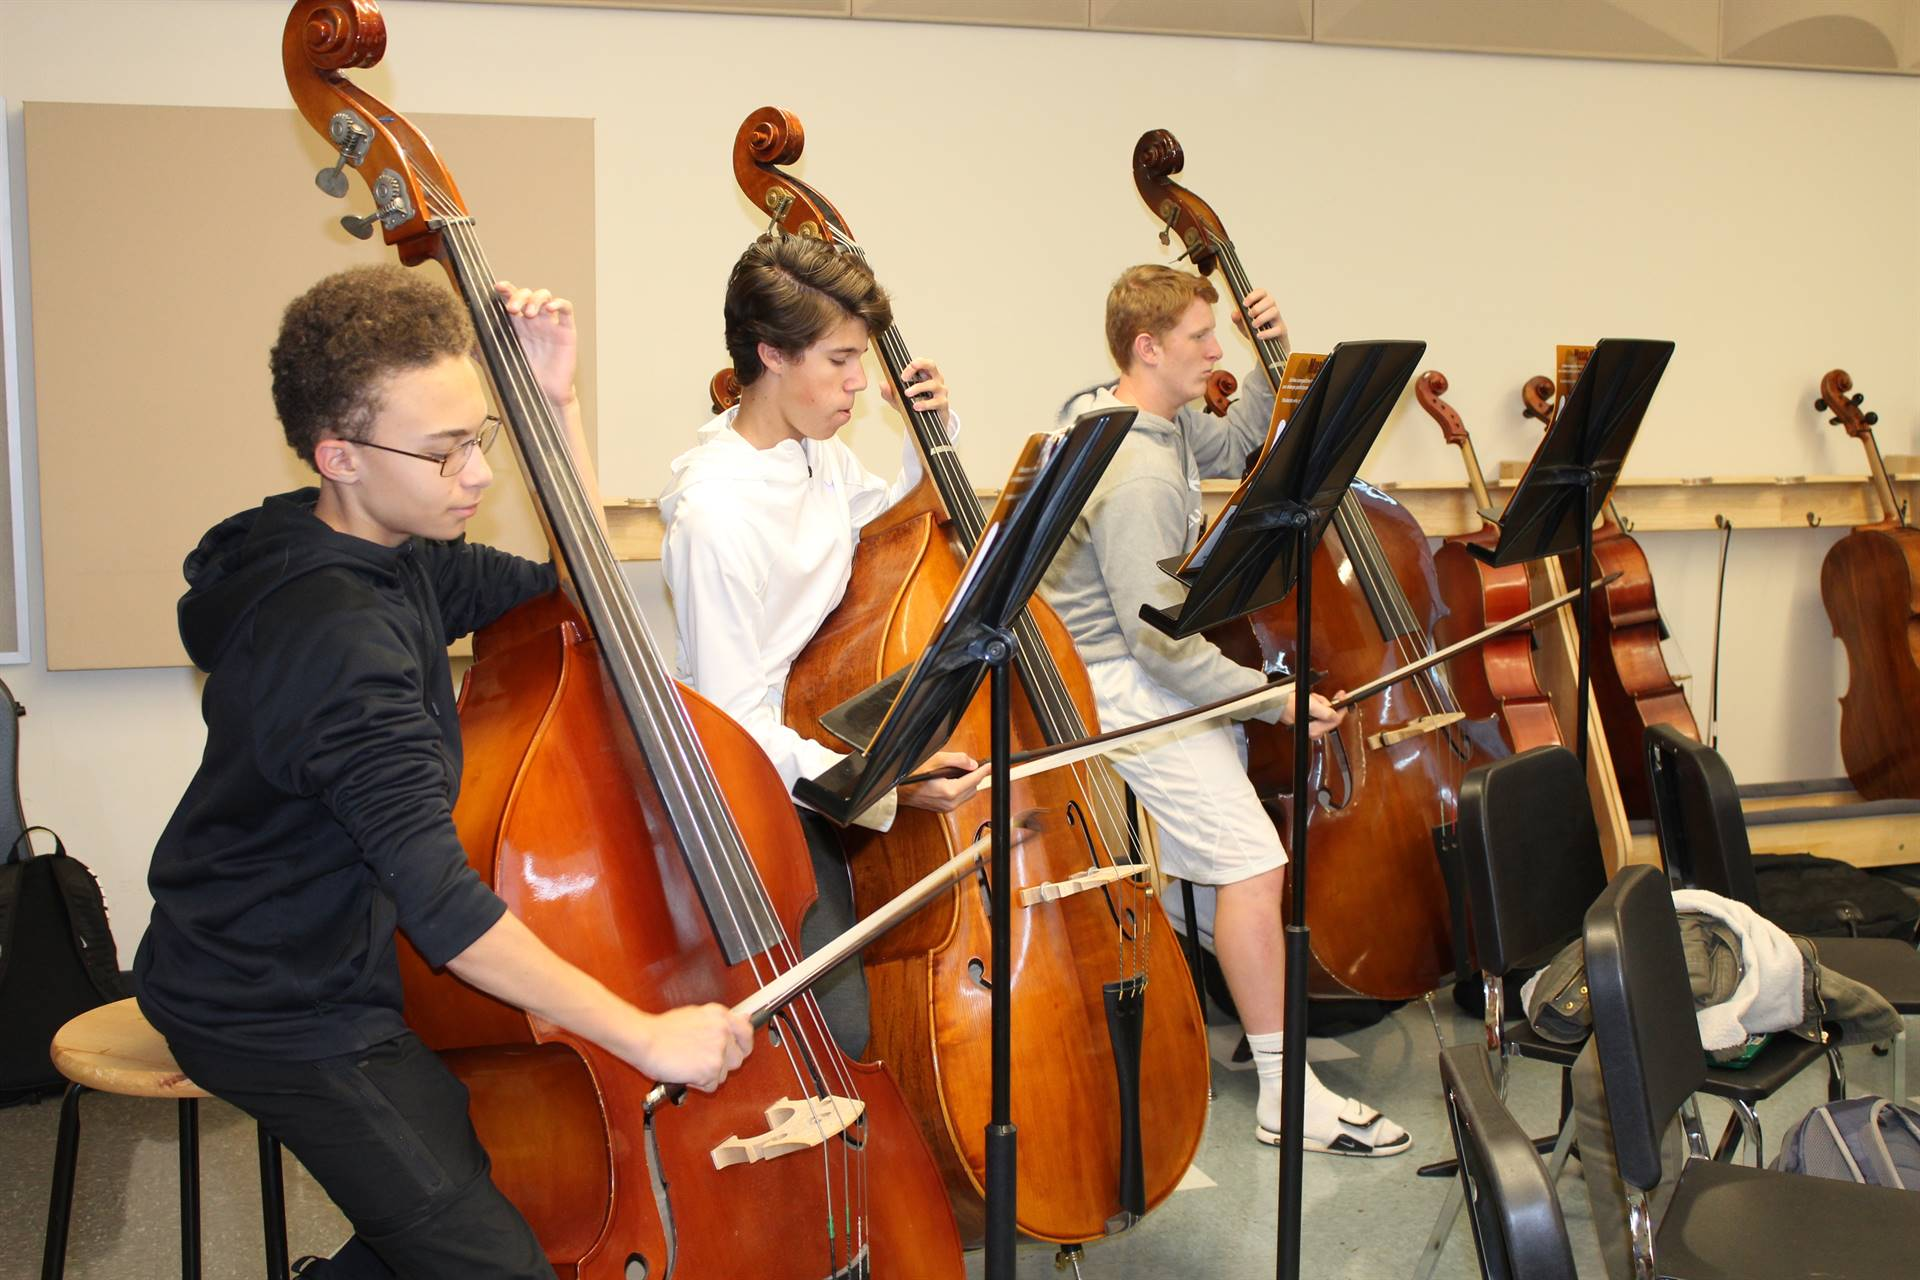 The BPHS String Orchestra rehearses for their November 16 Concert